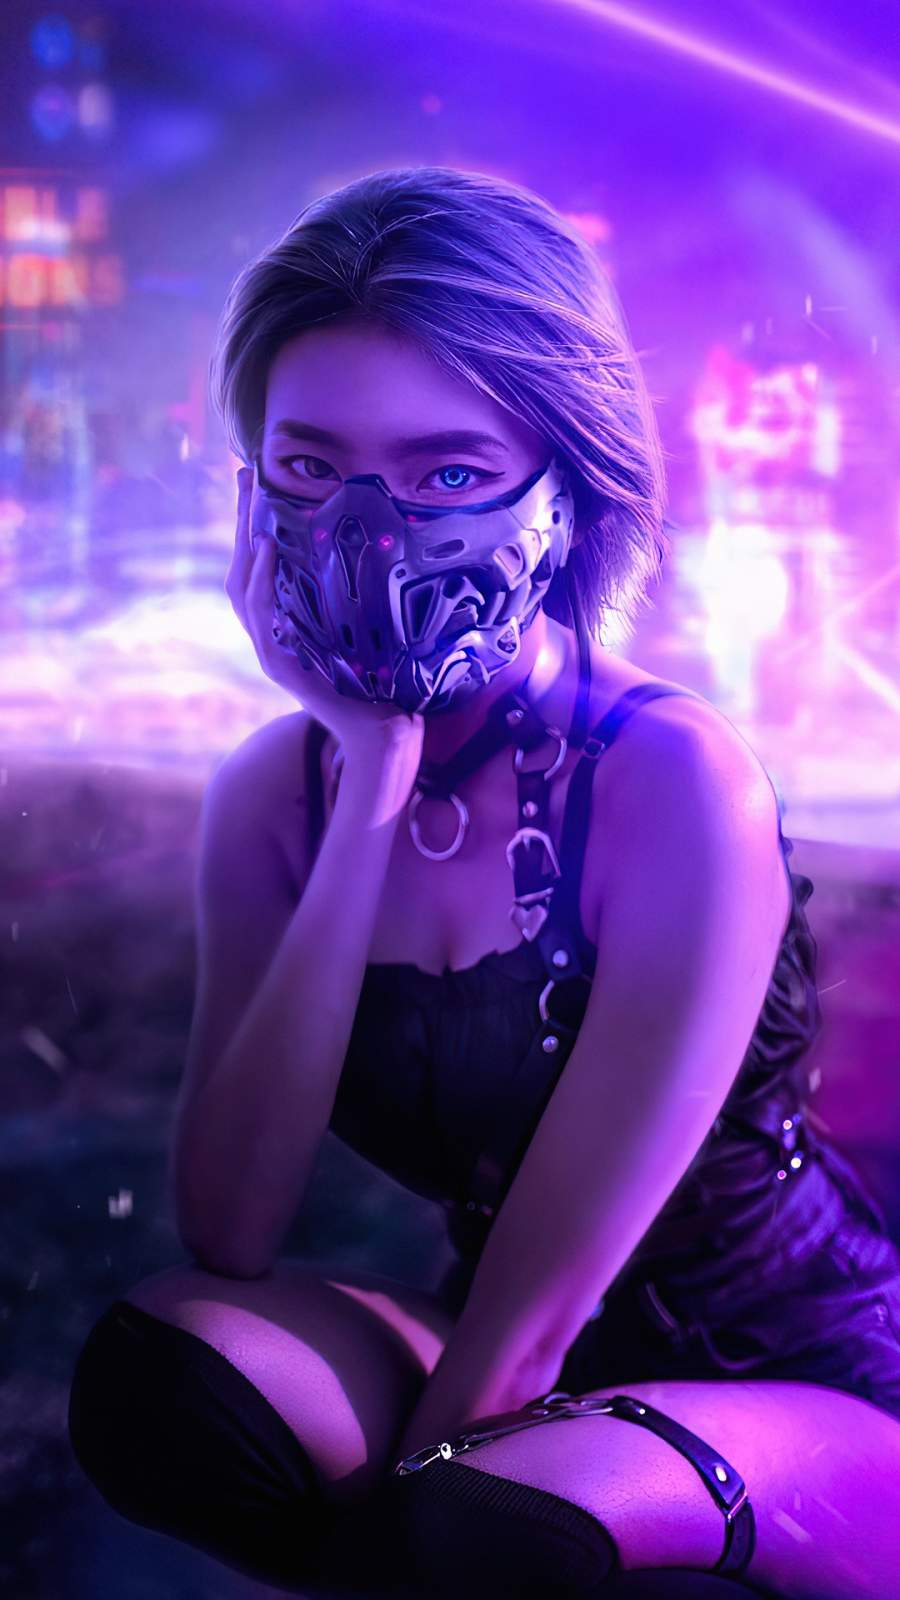 Cyberpunk Girl Mask